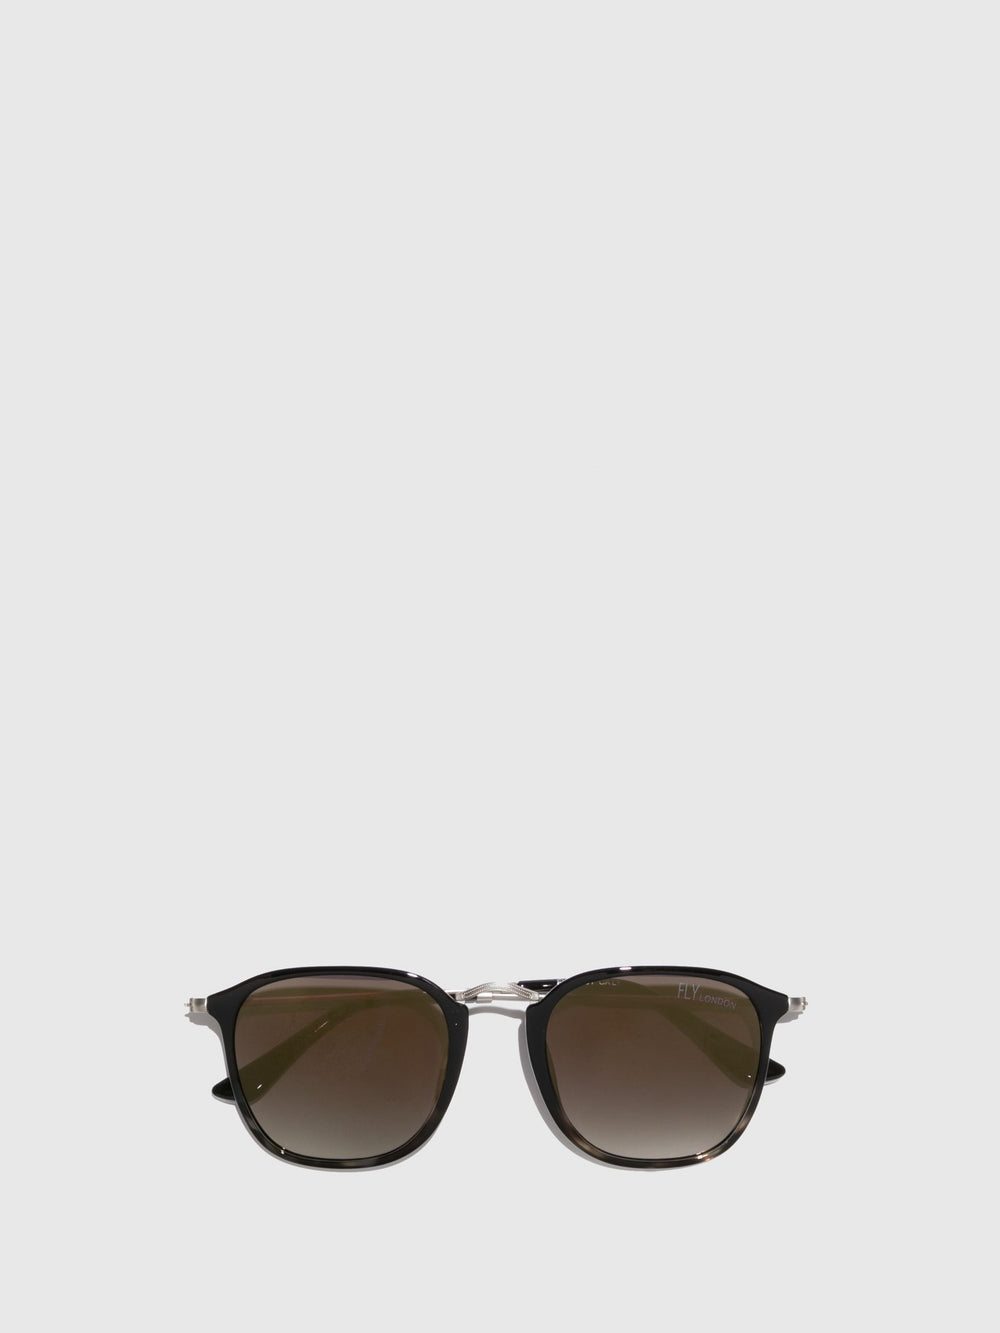 Black Clubmaster Style Sunglasses